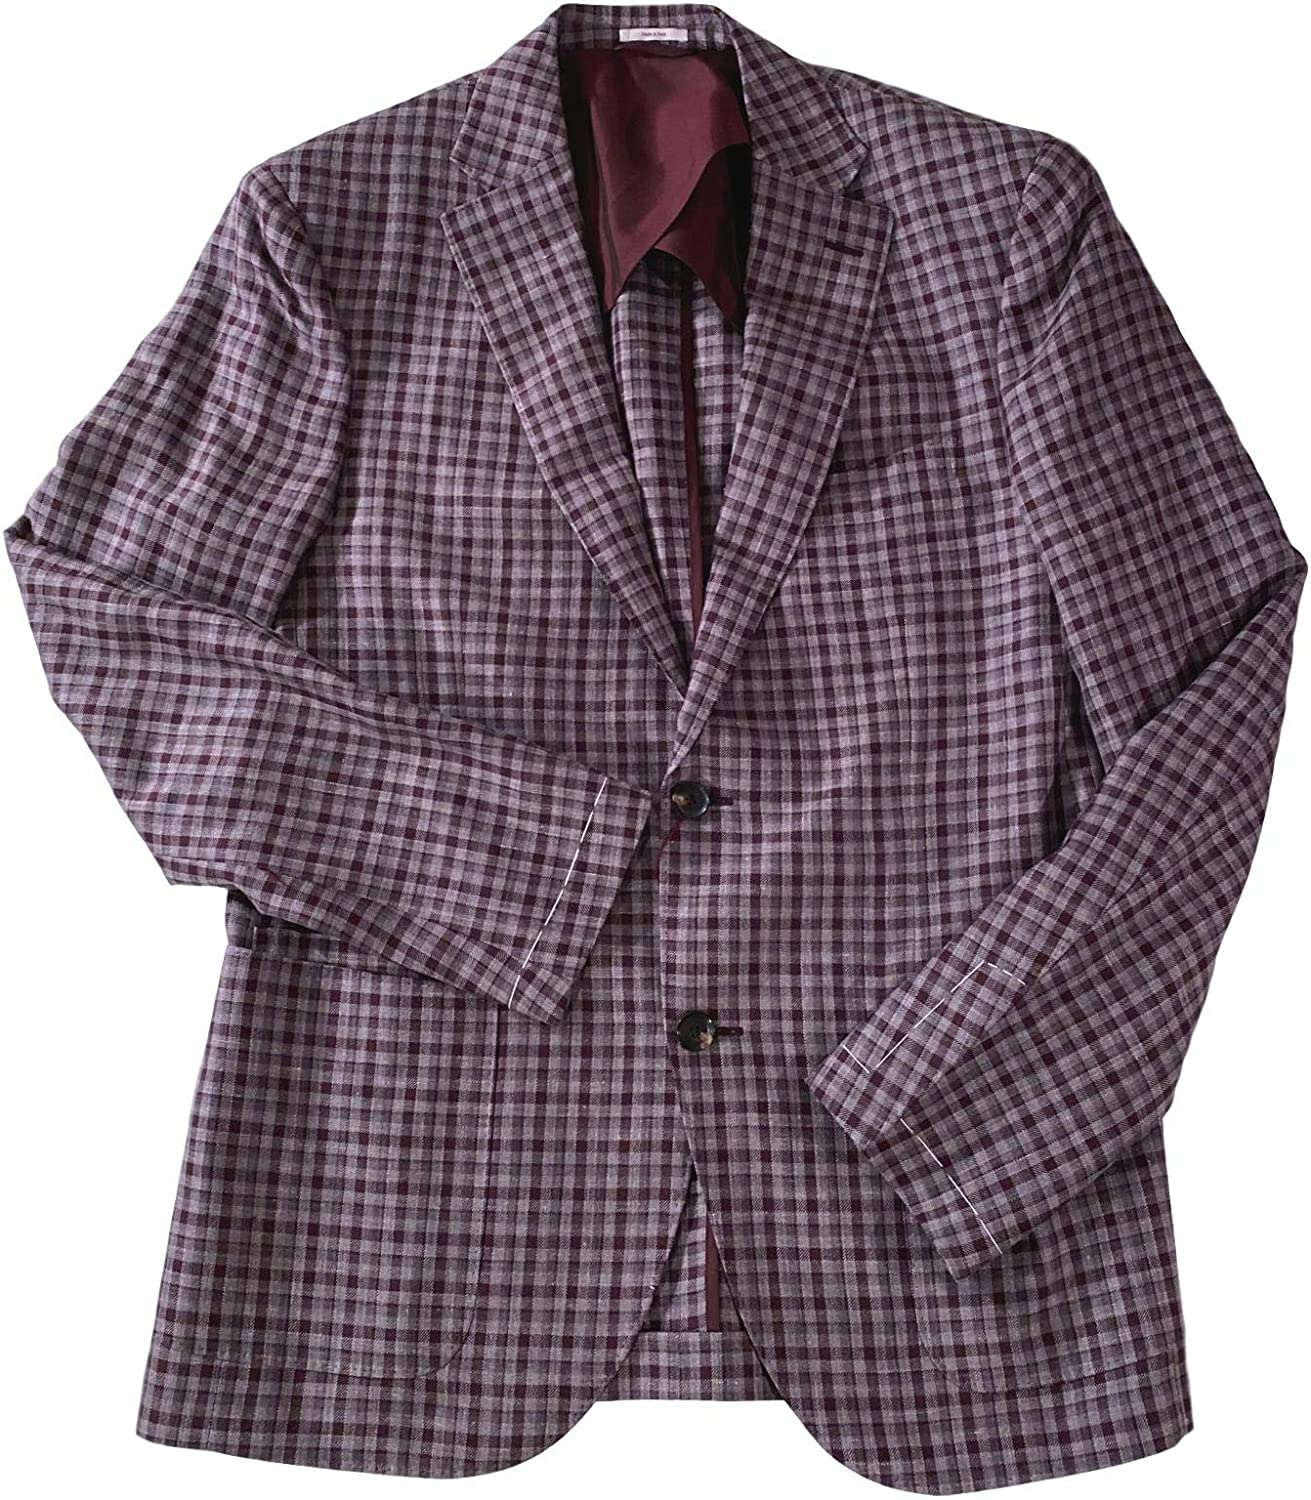 Luciano Barbera Men's Brown/Grey Check Wool/Silk/Linen 2 Button 2 Vent Topstitched Partially Lined Blazer US 40R